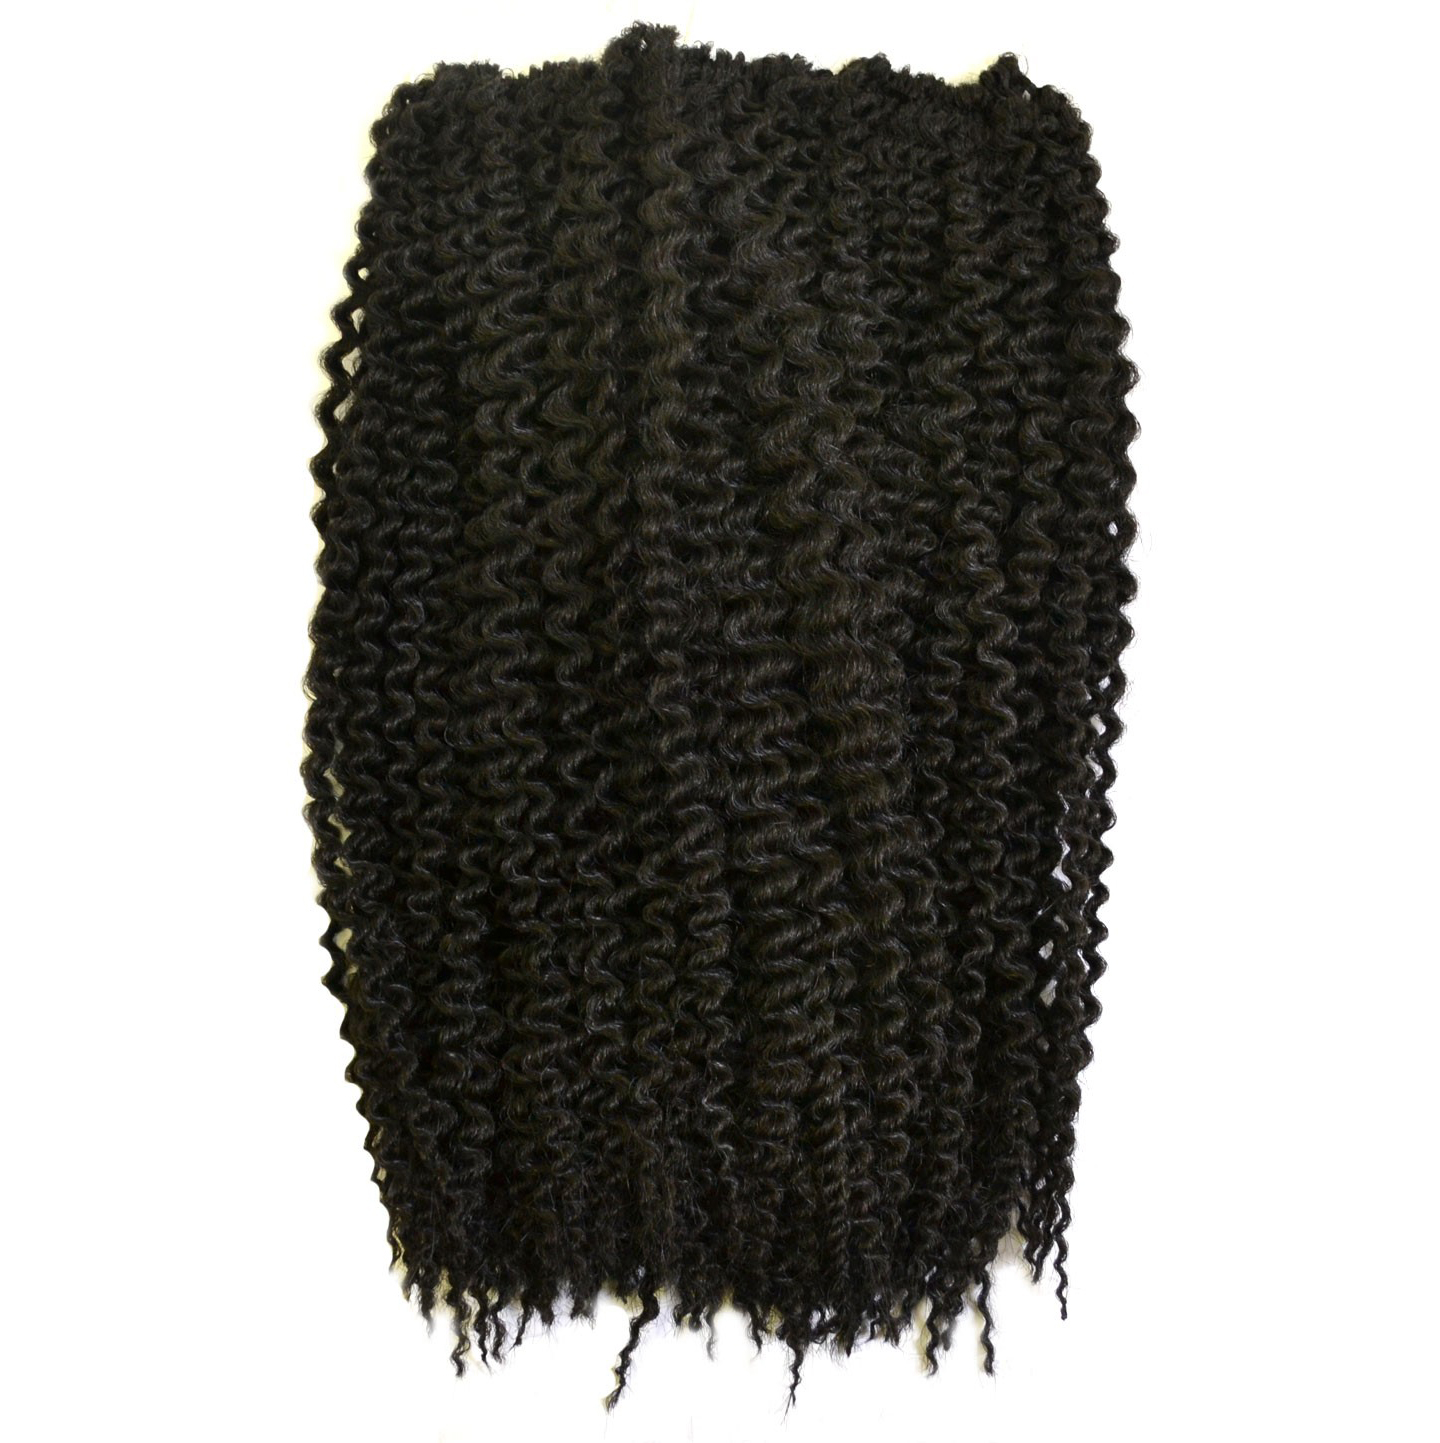 "3X PRE-LOOP ISLAND TWIST 16"" - FREETRESS SYNTHETIC CROCHET ..."